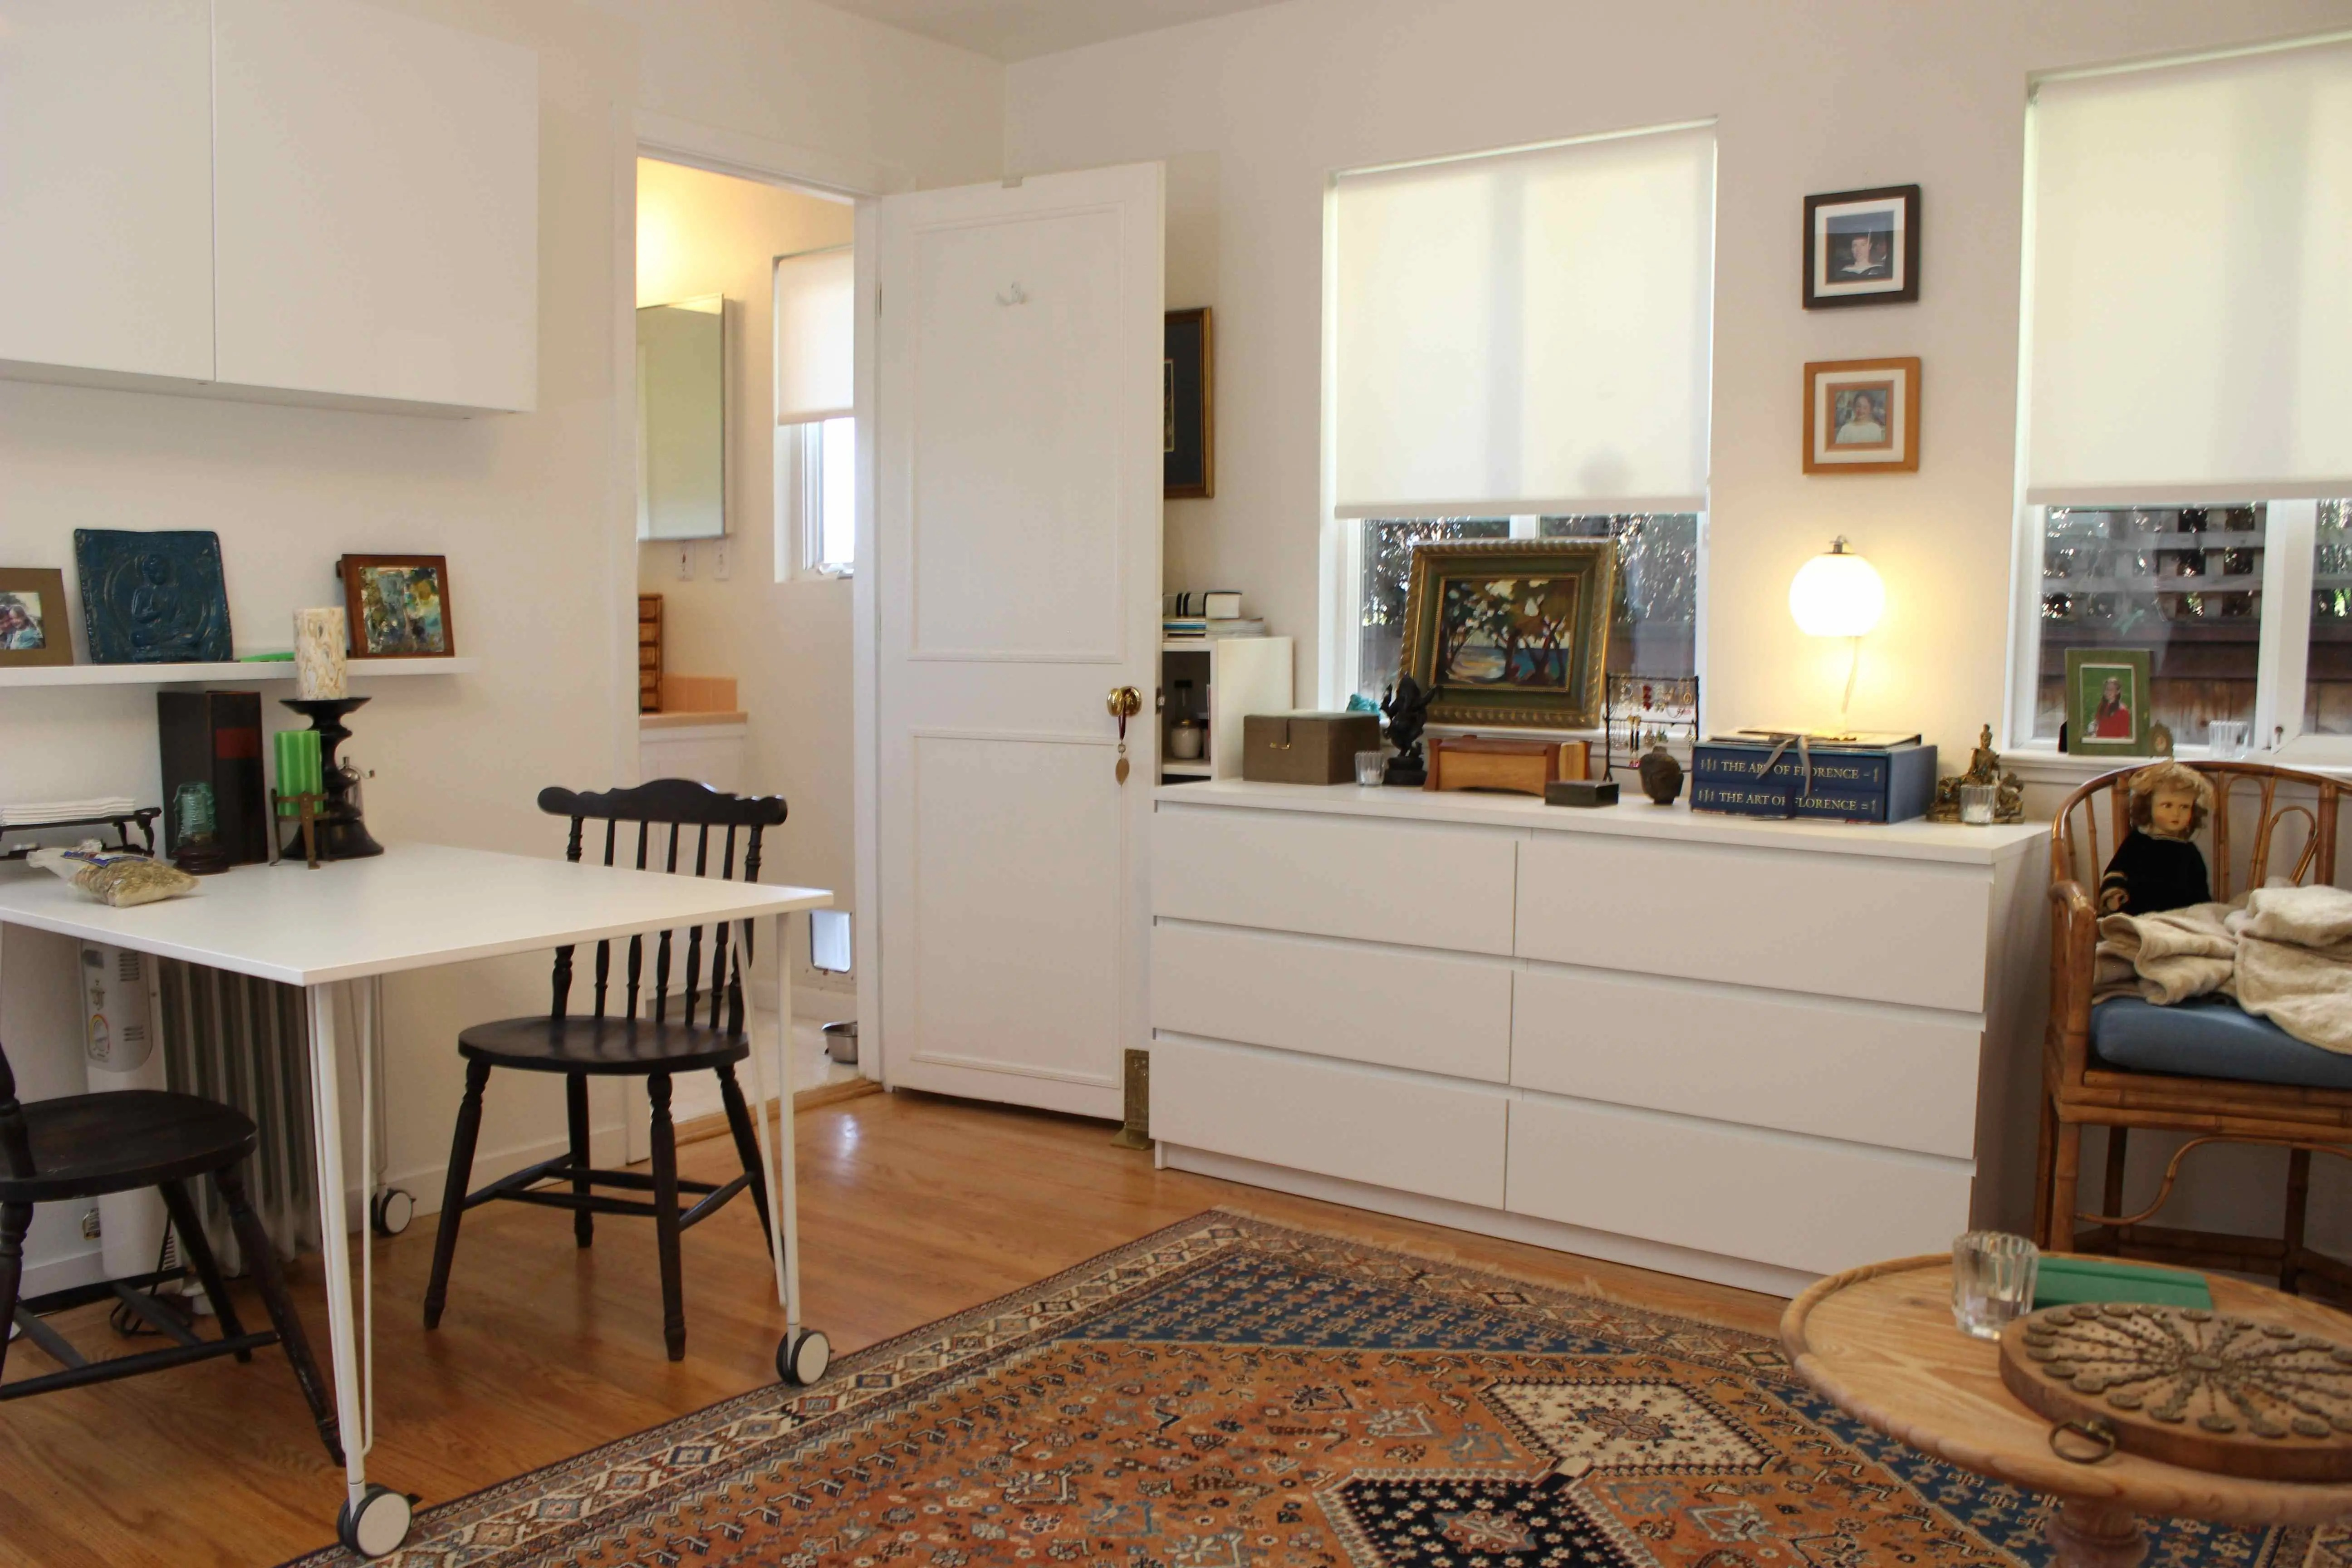 Lilypad Homes Converts Spare Bedrooms Tiny House Blog